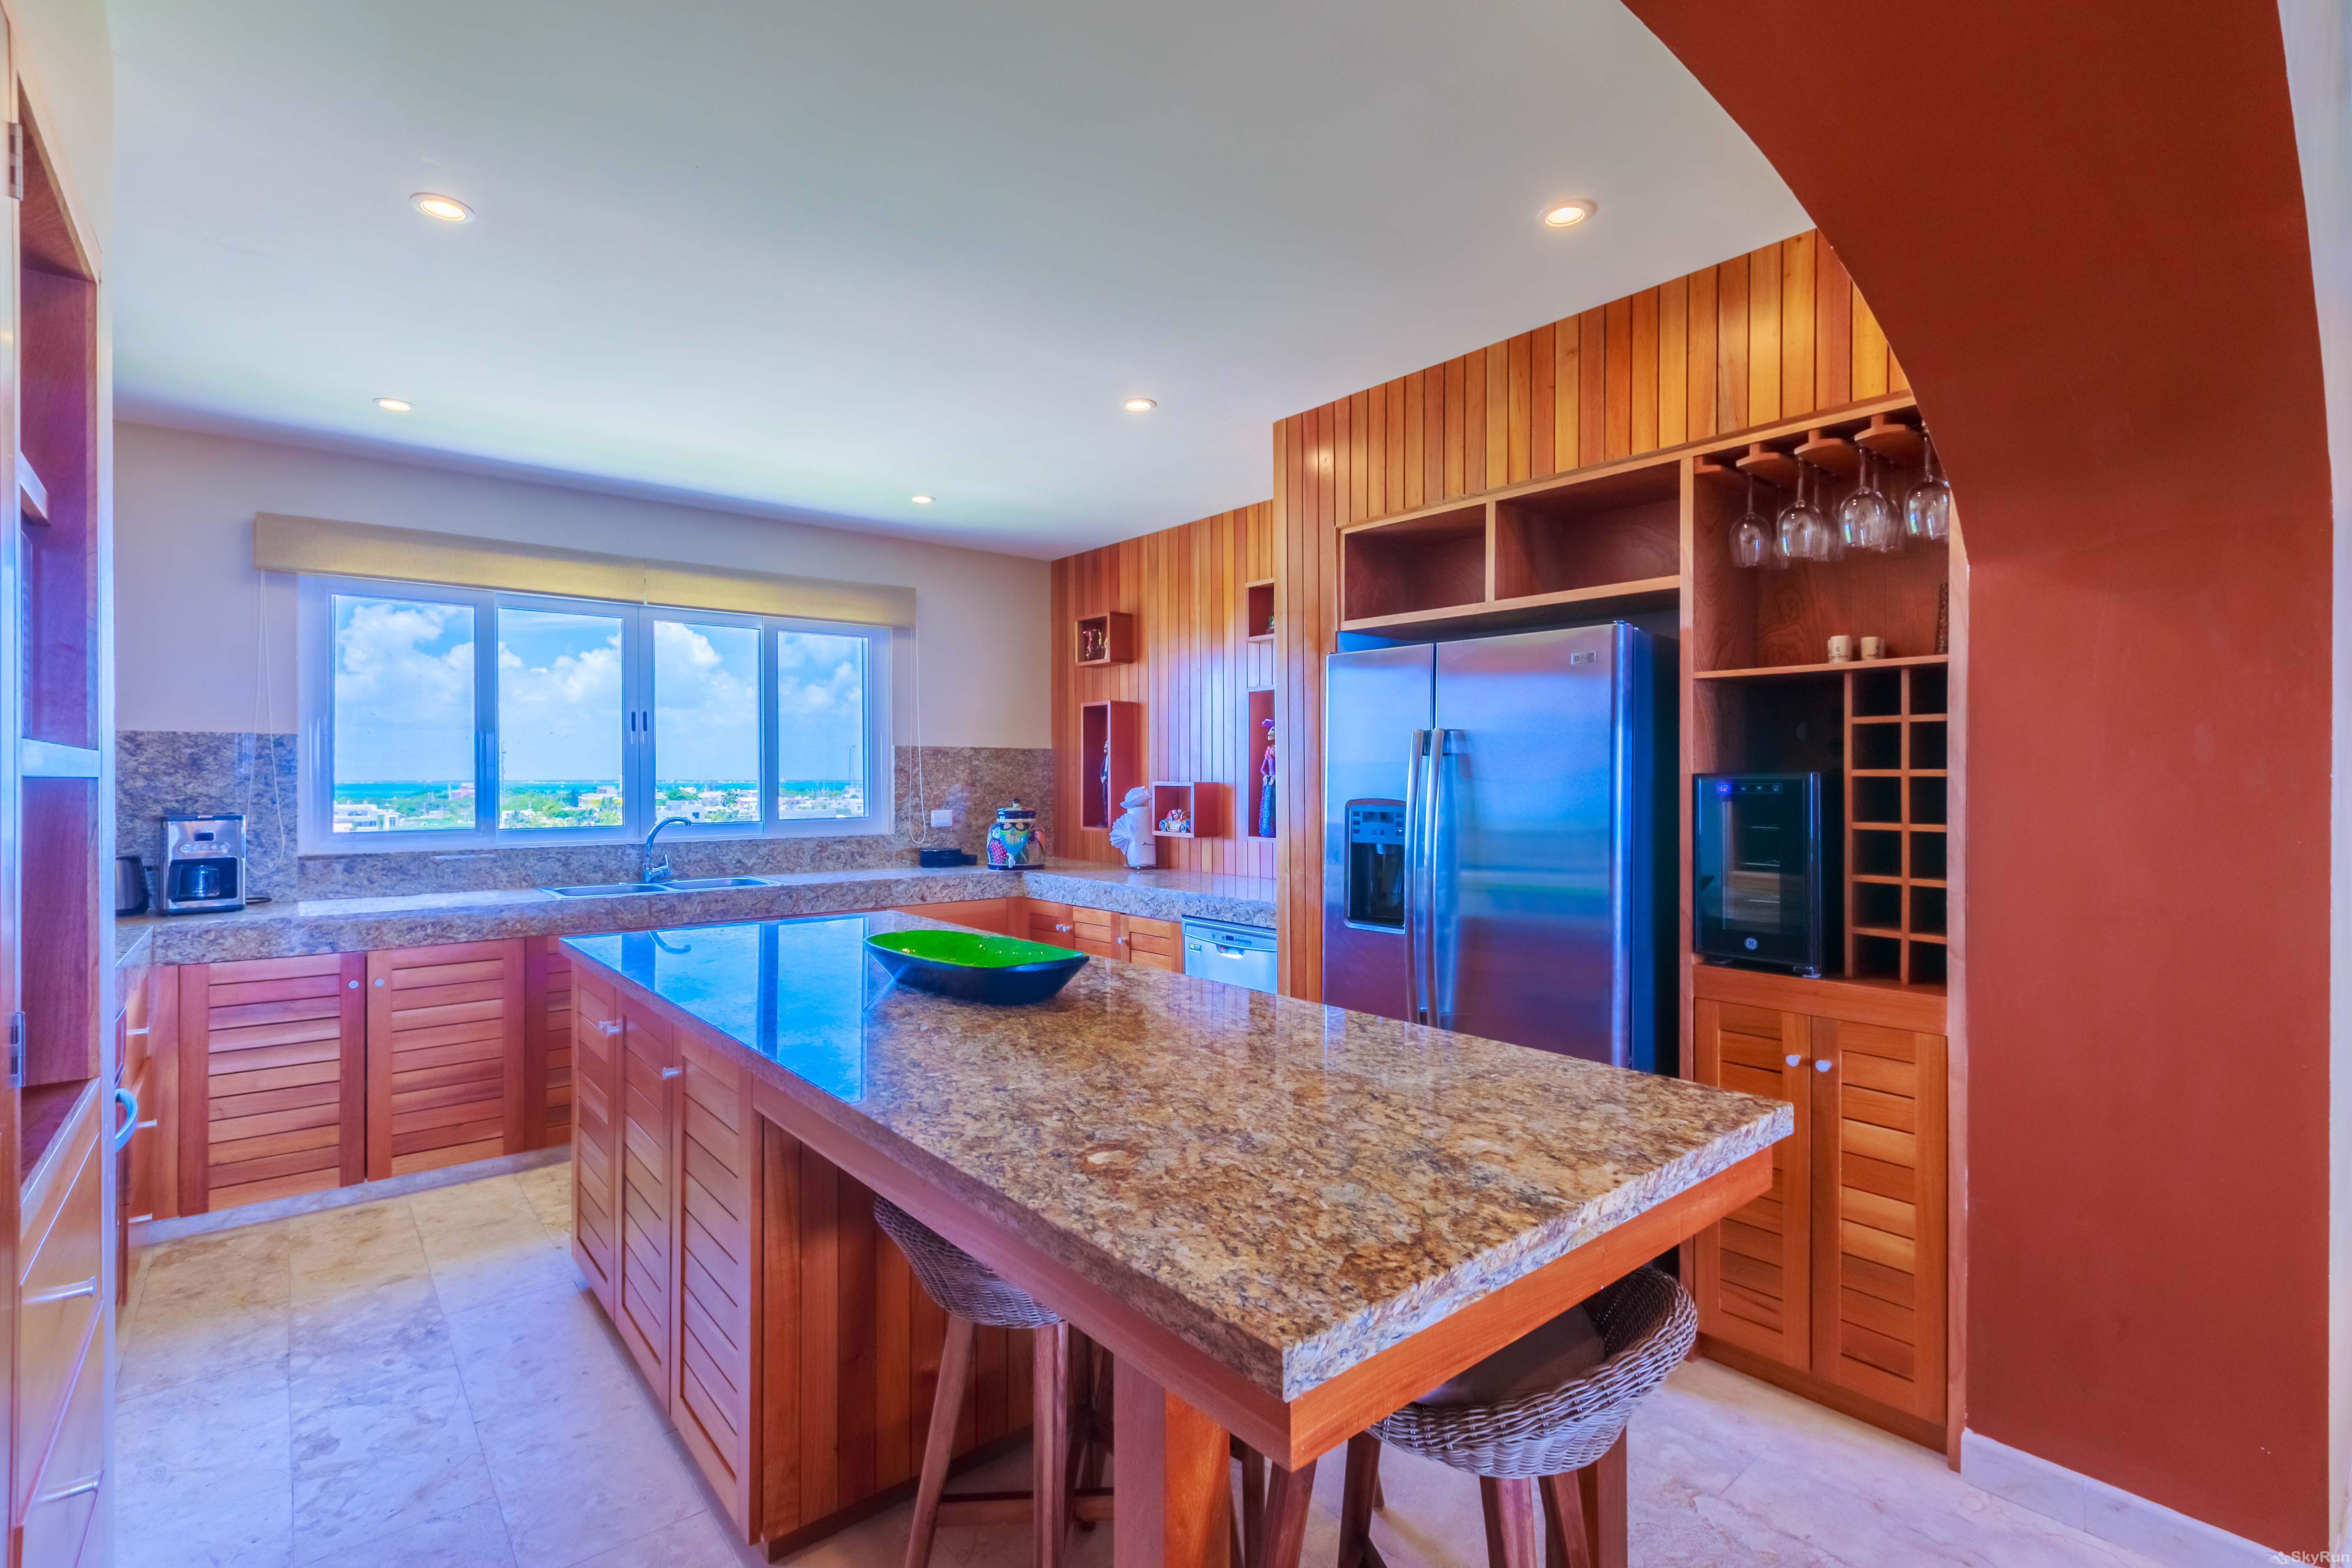 New Luxury Villa Isla 33 Prepare breakfast, lunch or dinner in your spacious fully equipped kitchen.